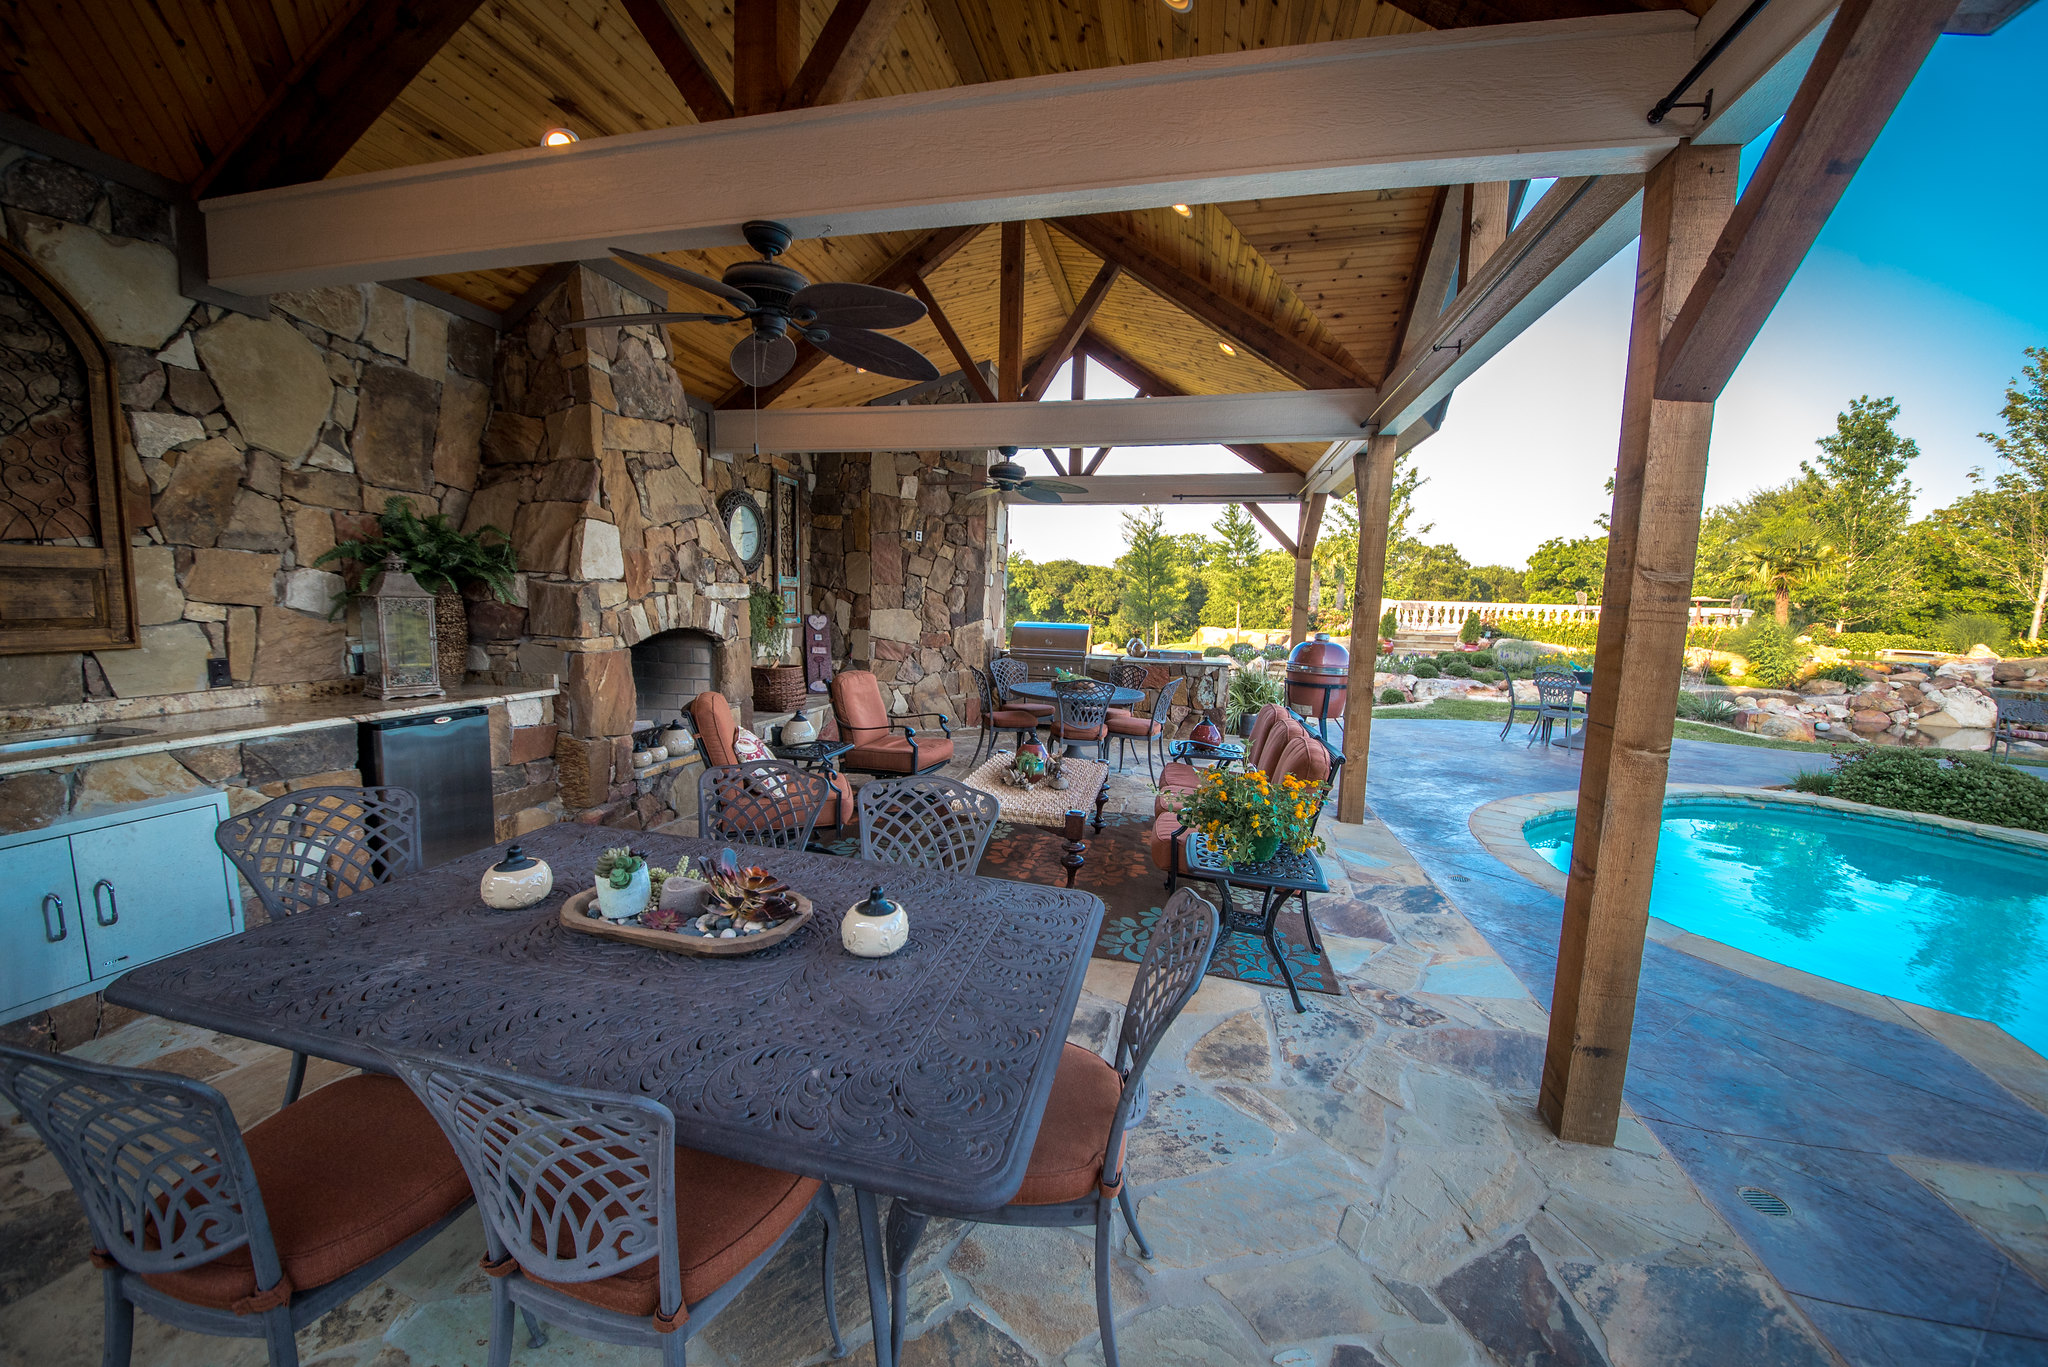 Southern Outdoor Living - Allison Landscpe & Pool Company on Southern Outdoor Living id=53963